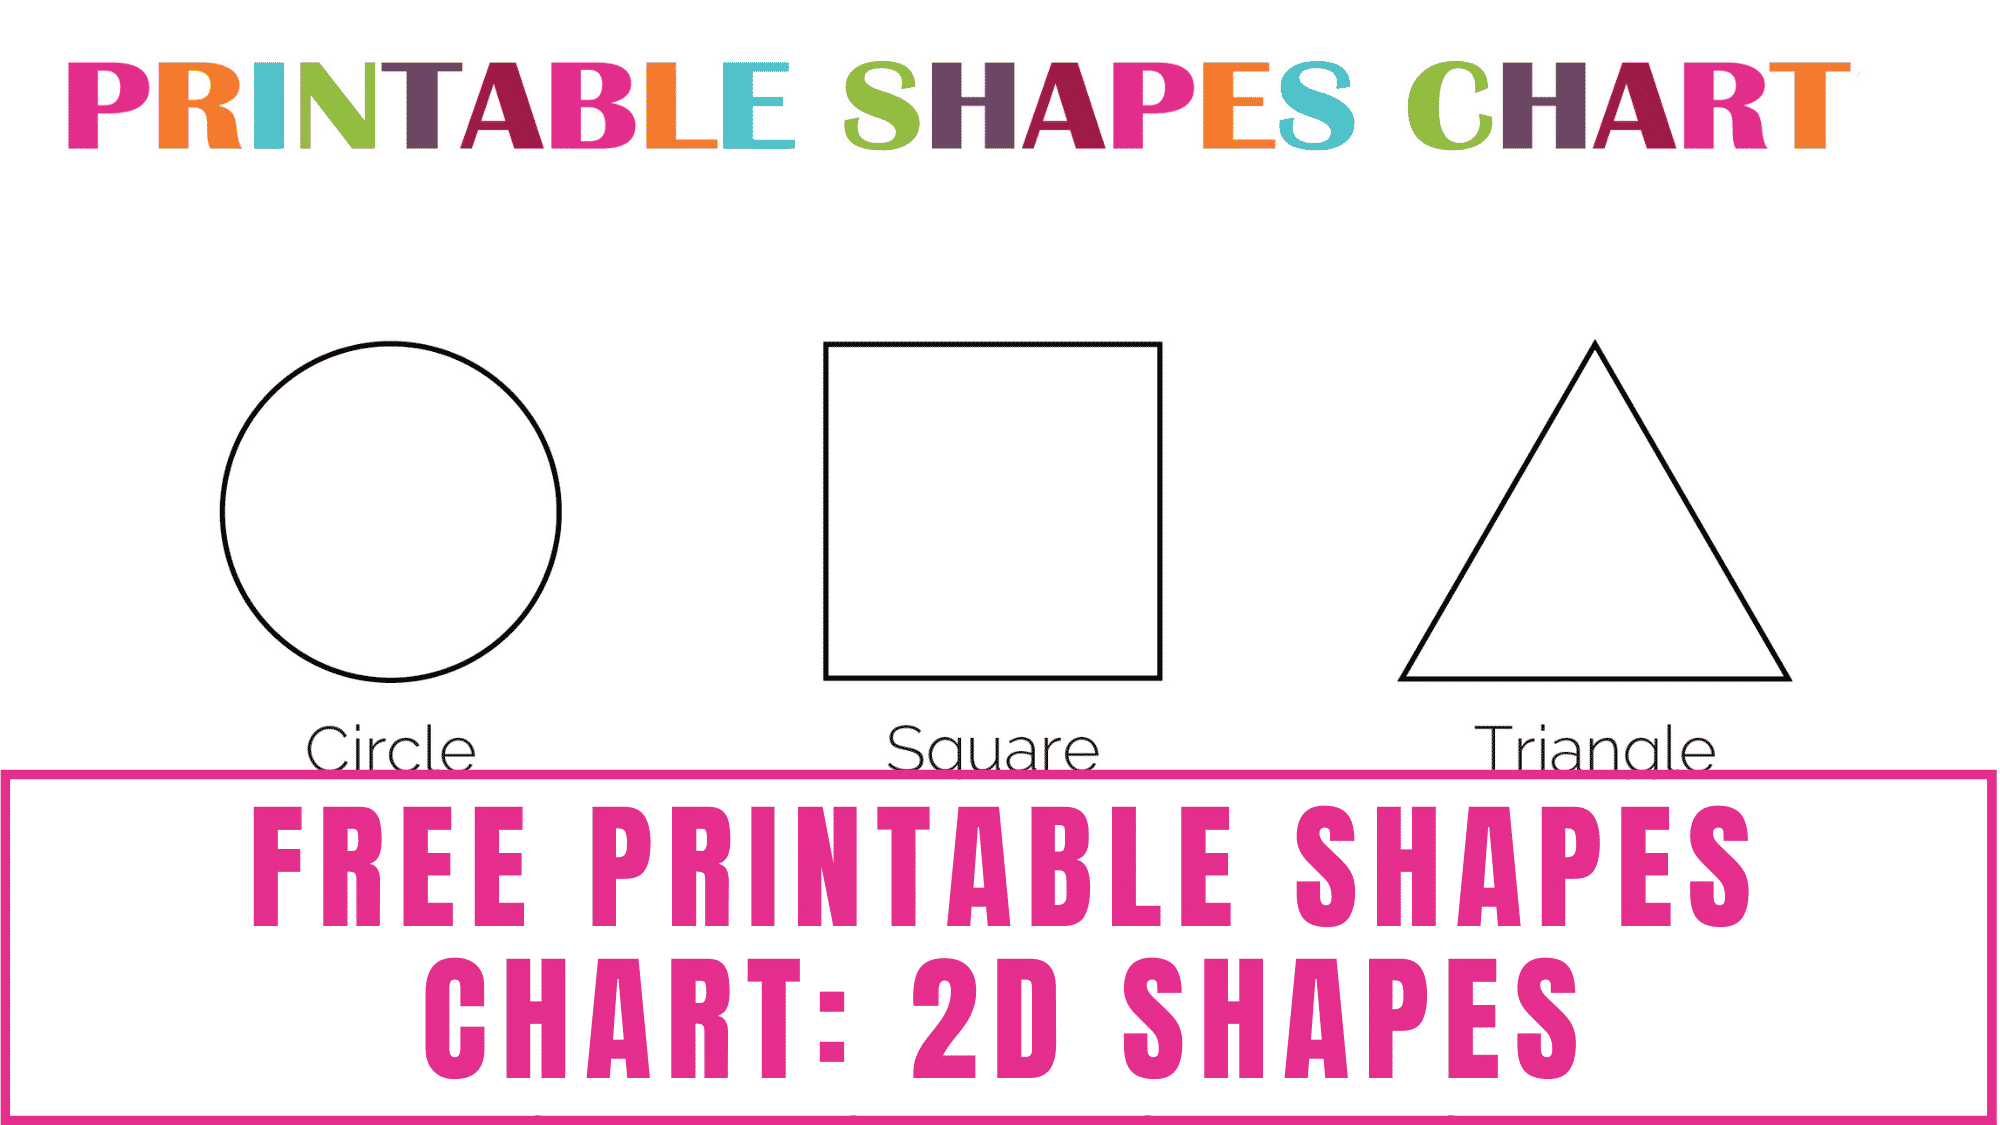 Looking for a pretty shapes chart for preschool or kindergarten? This free printable shapes chart of 2D shapes is perfect for teaching kids shape recognition.